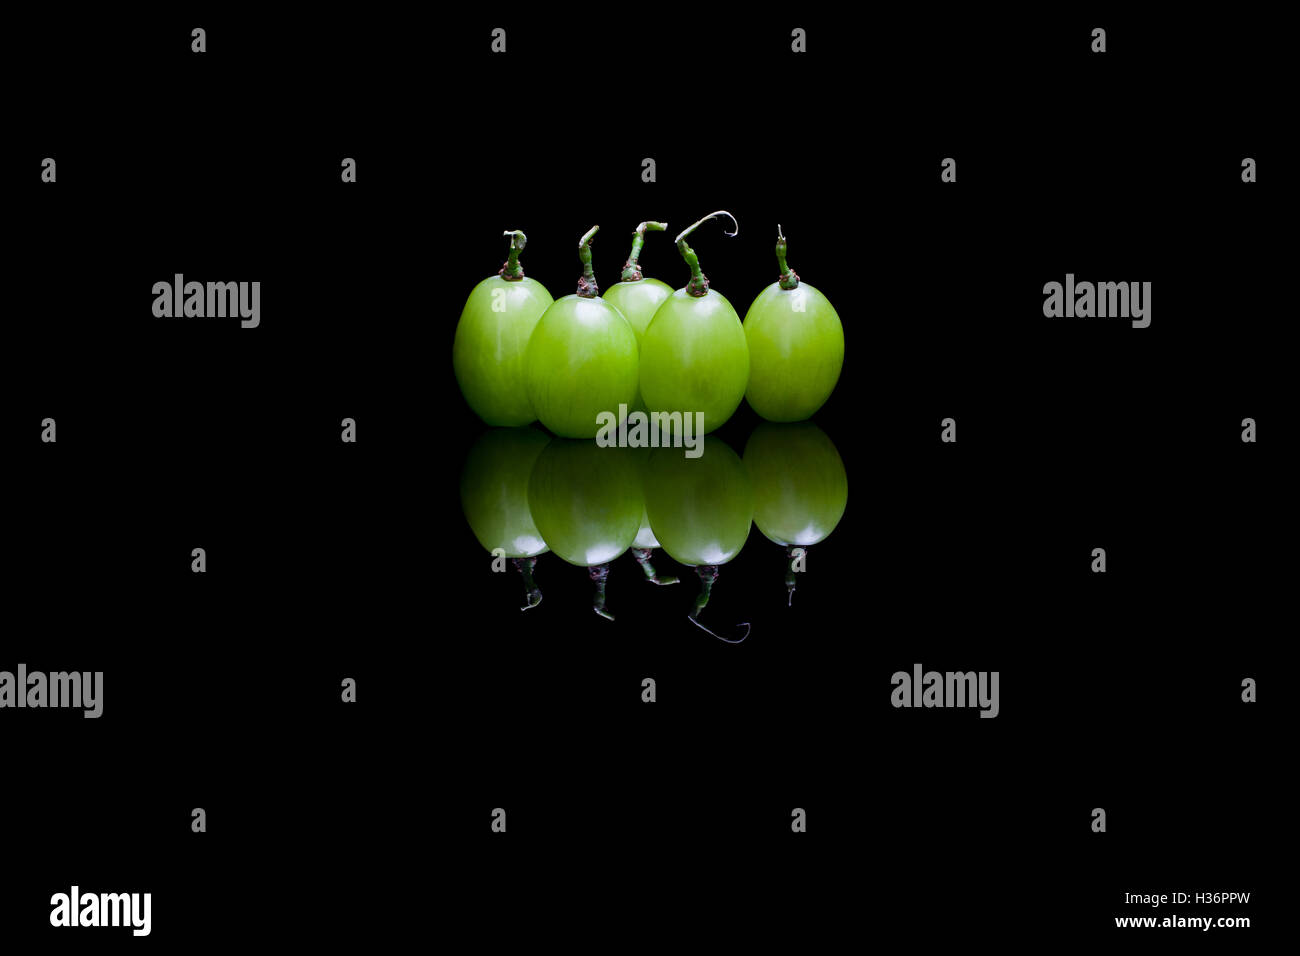 Five isolated grapes on black reflective background - Stock Image